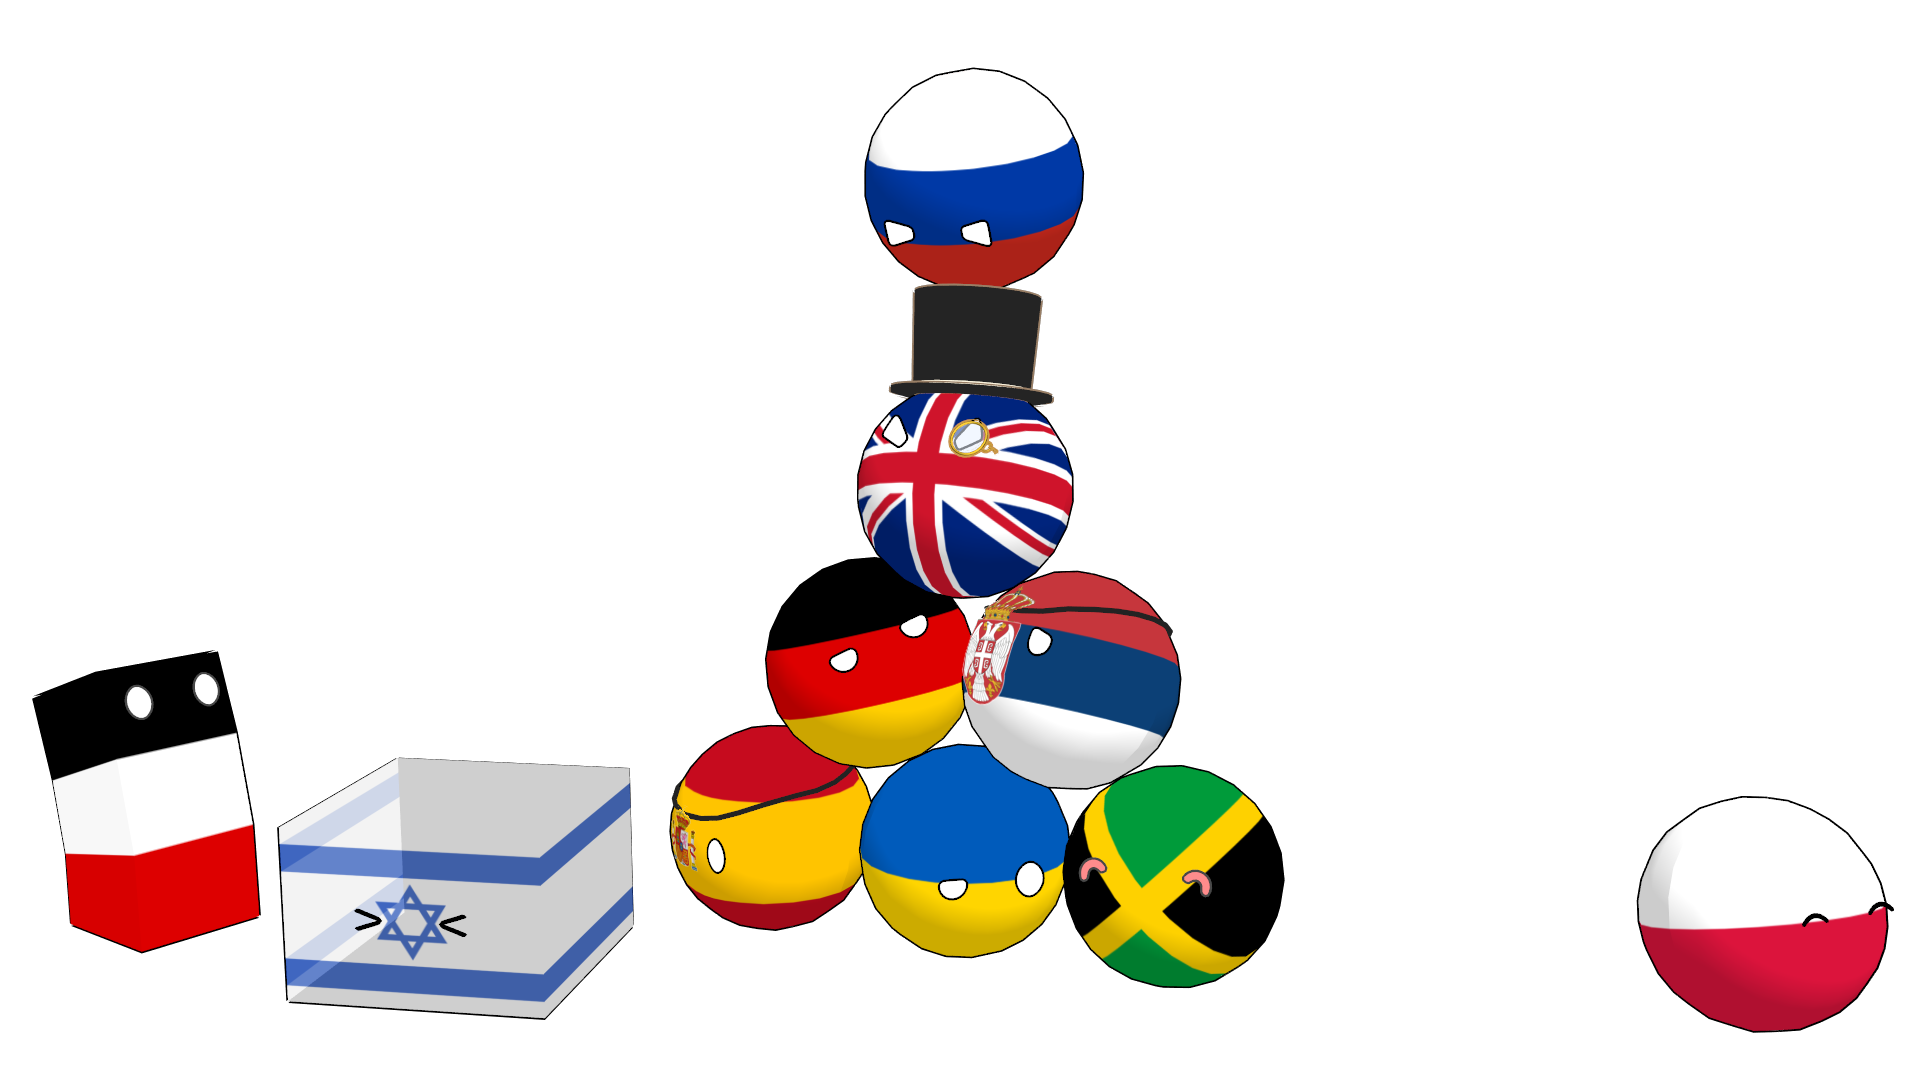 Wallpaper download free image search 3d - Mmd Countryballs Download By Masterofhelium On Deviantart